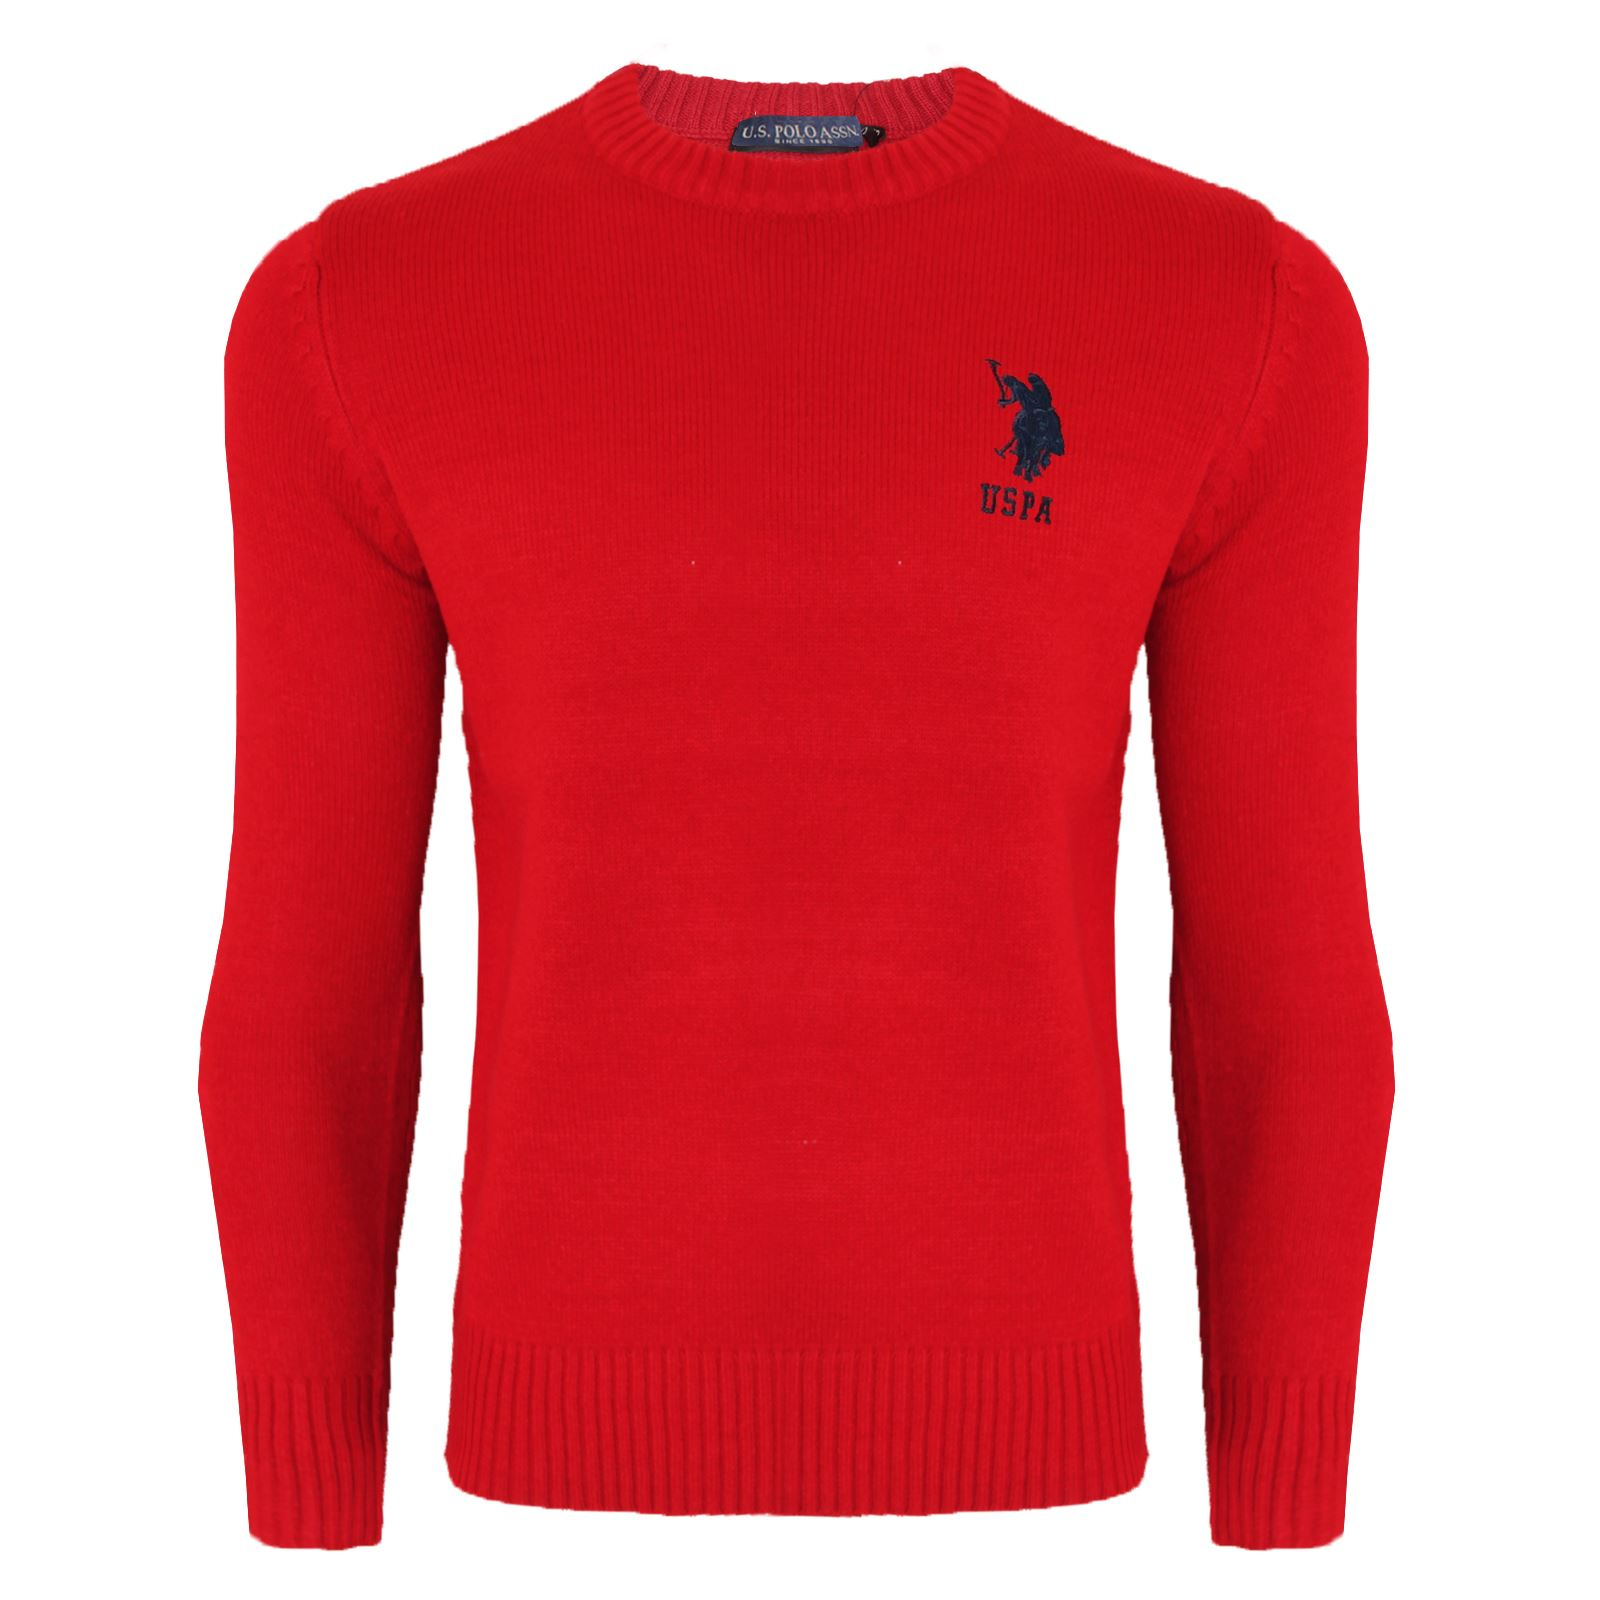 Mens-Branded-Designer-Cable-Knit-Jumpers-Pullover-Sweater-For-Men-Lauren